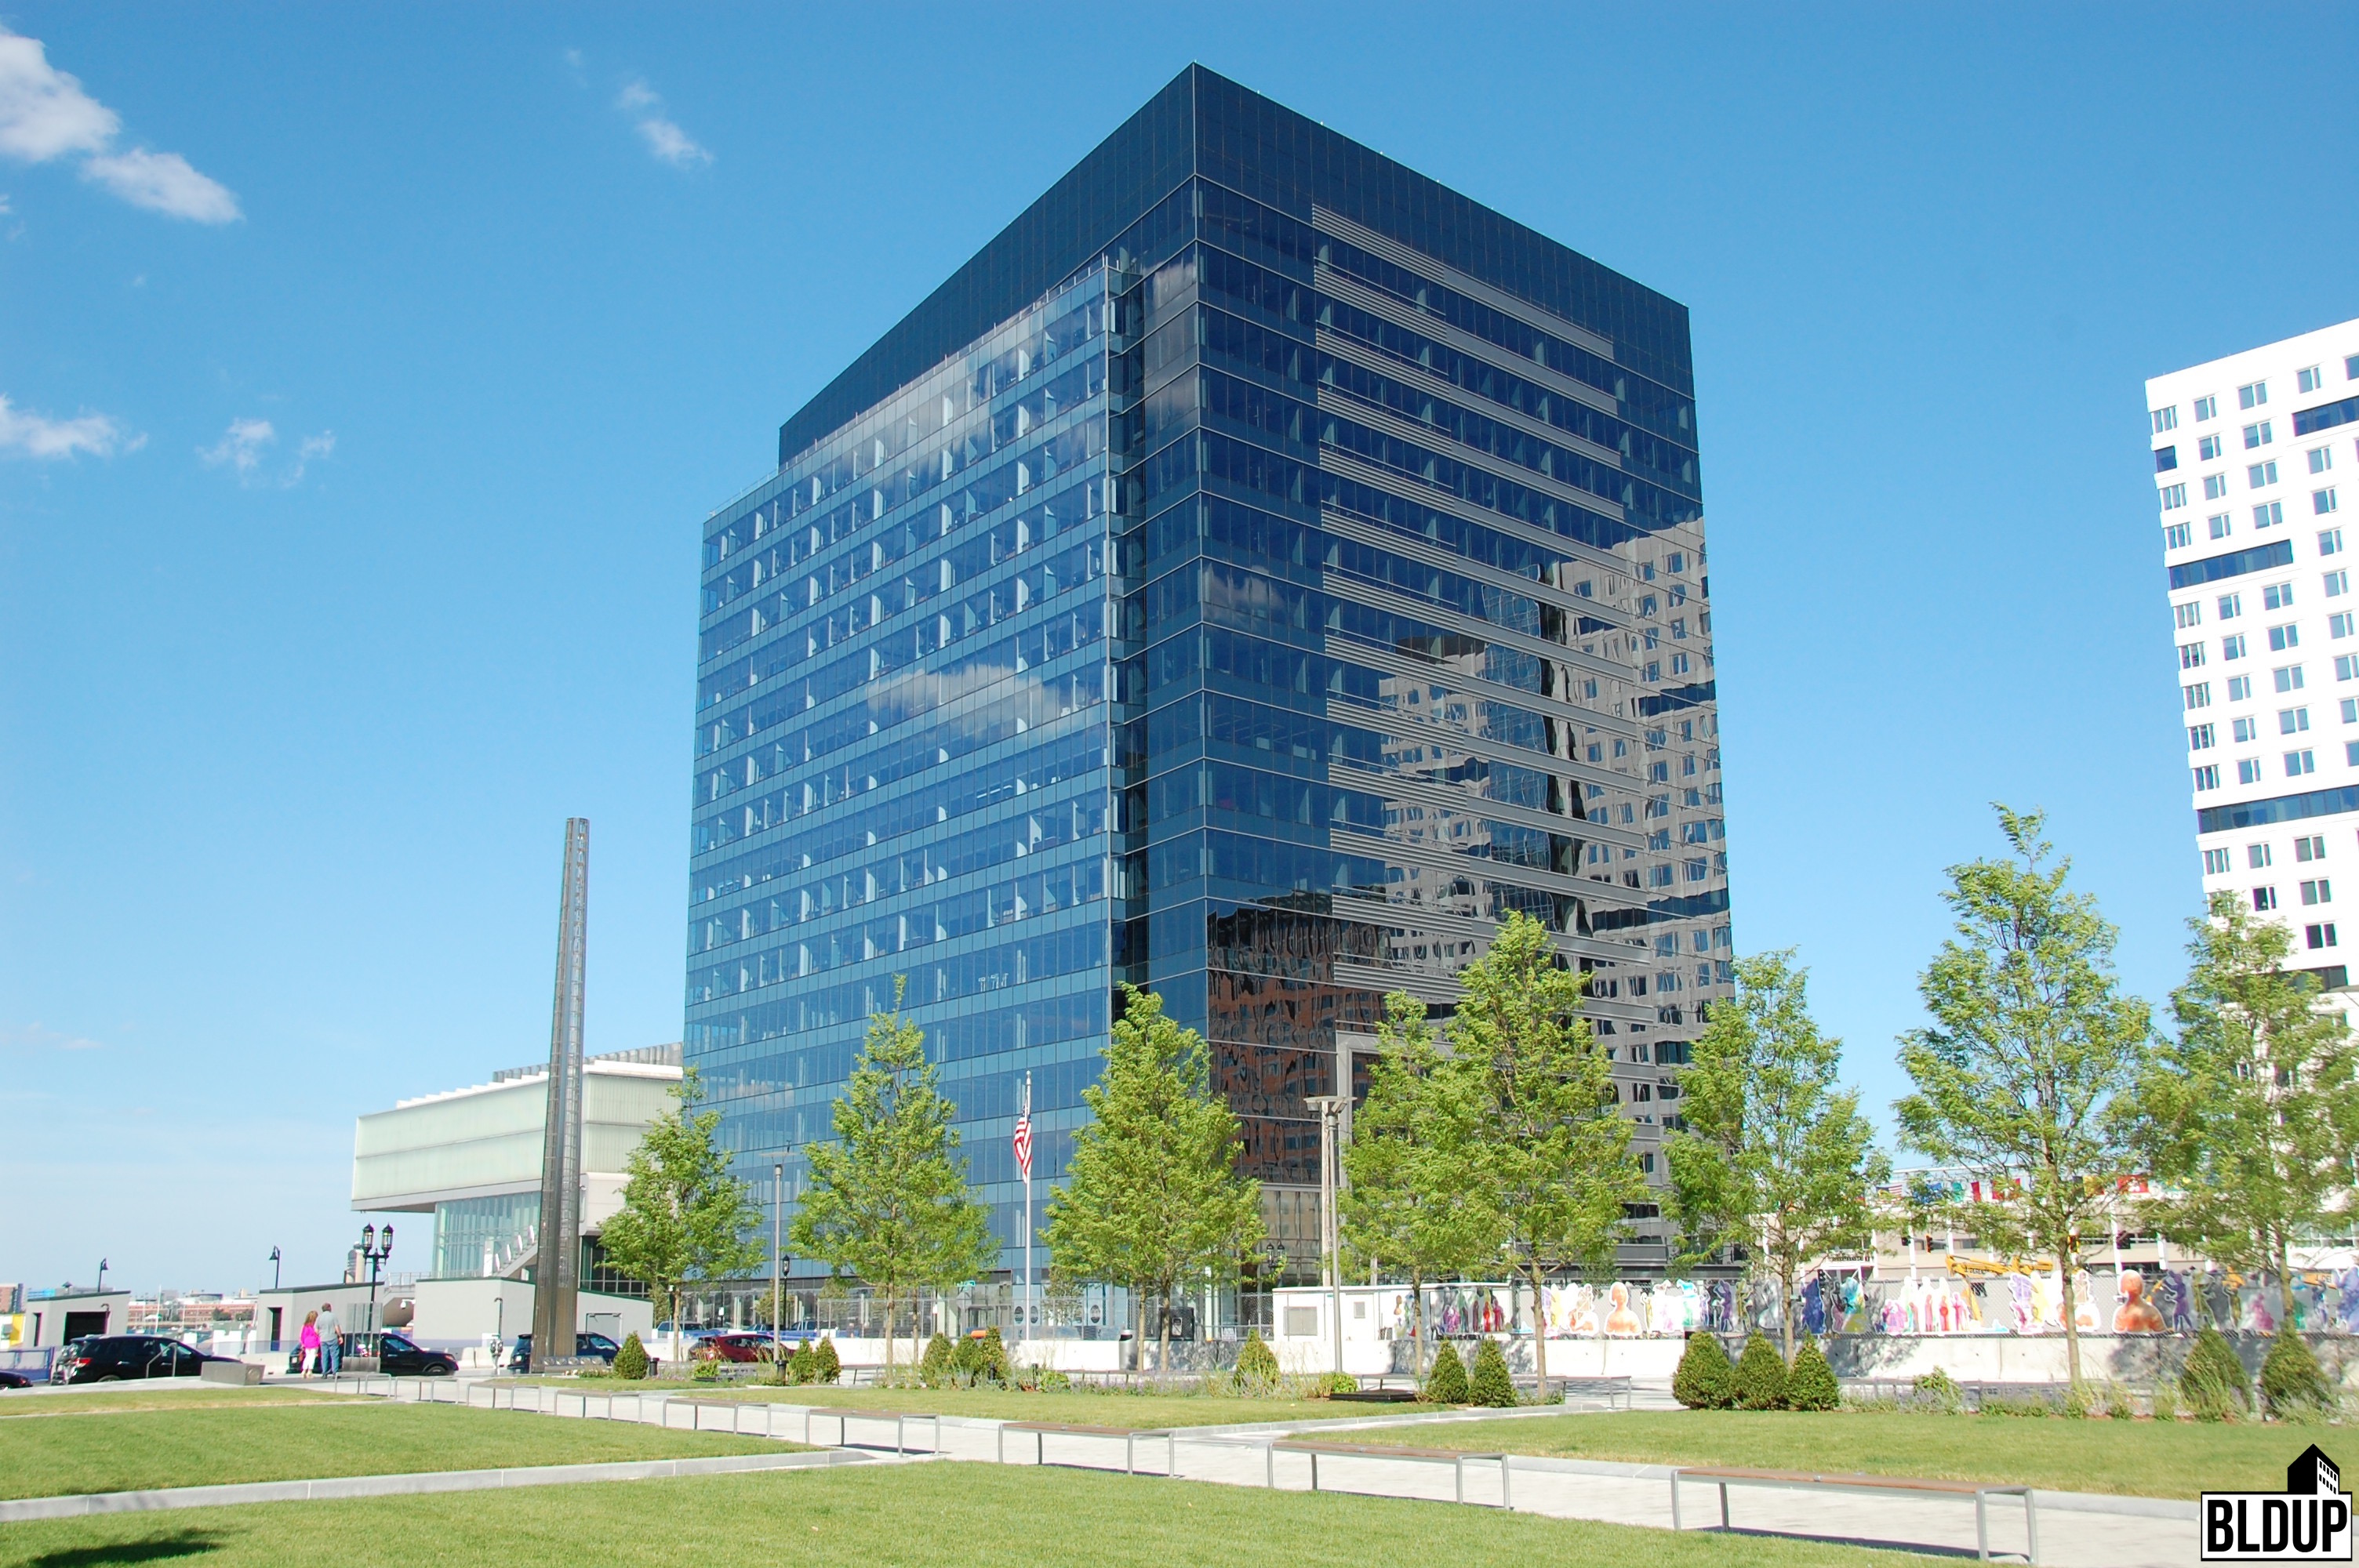 100 northern avenue seaport district south boston waterfront office retail development fallon company fan pier turner construction